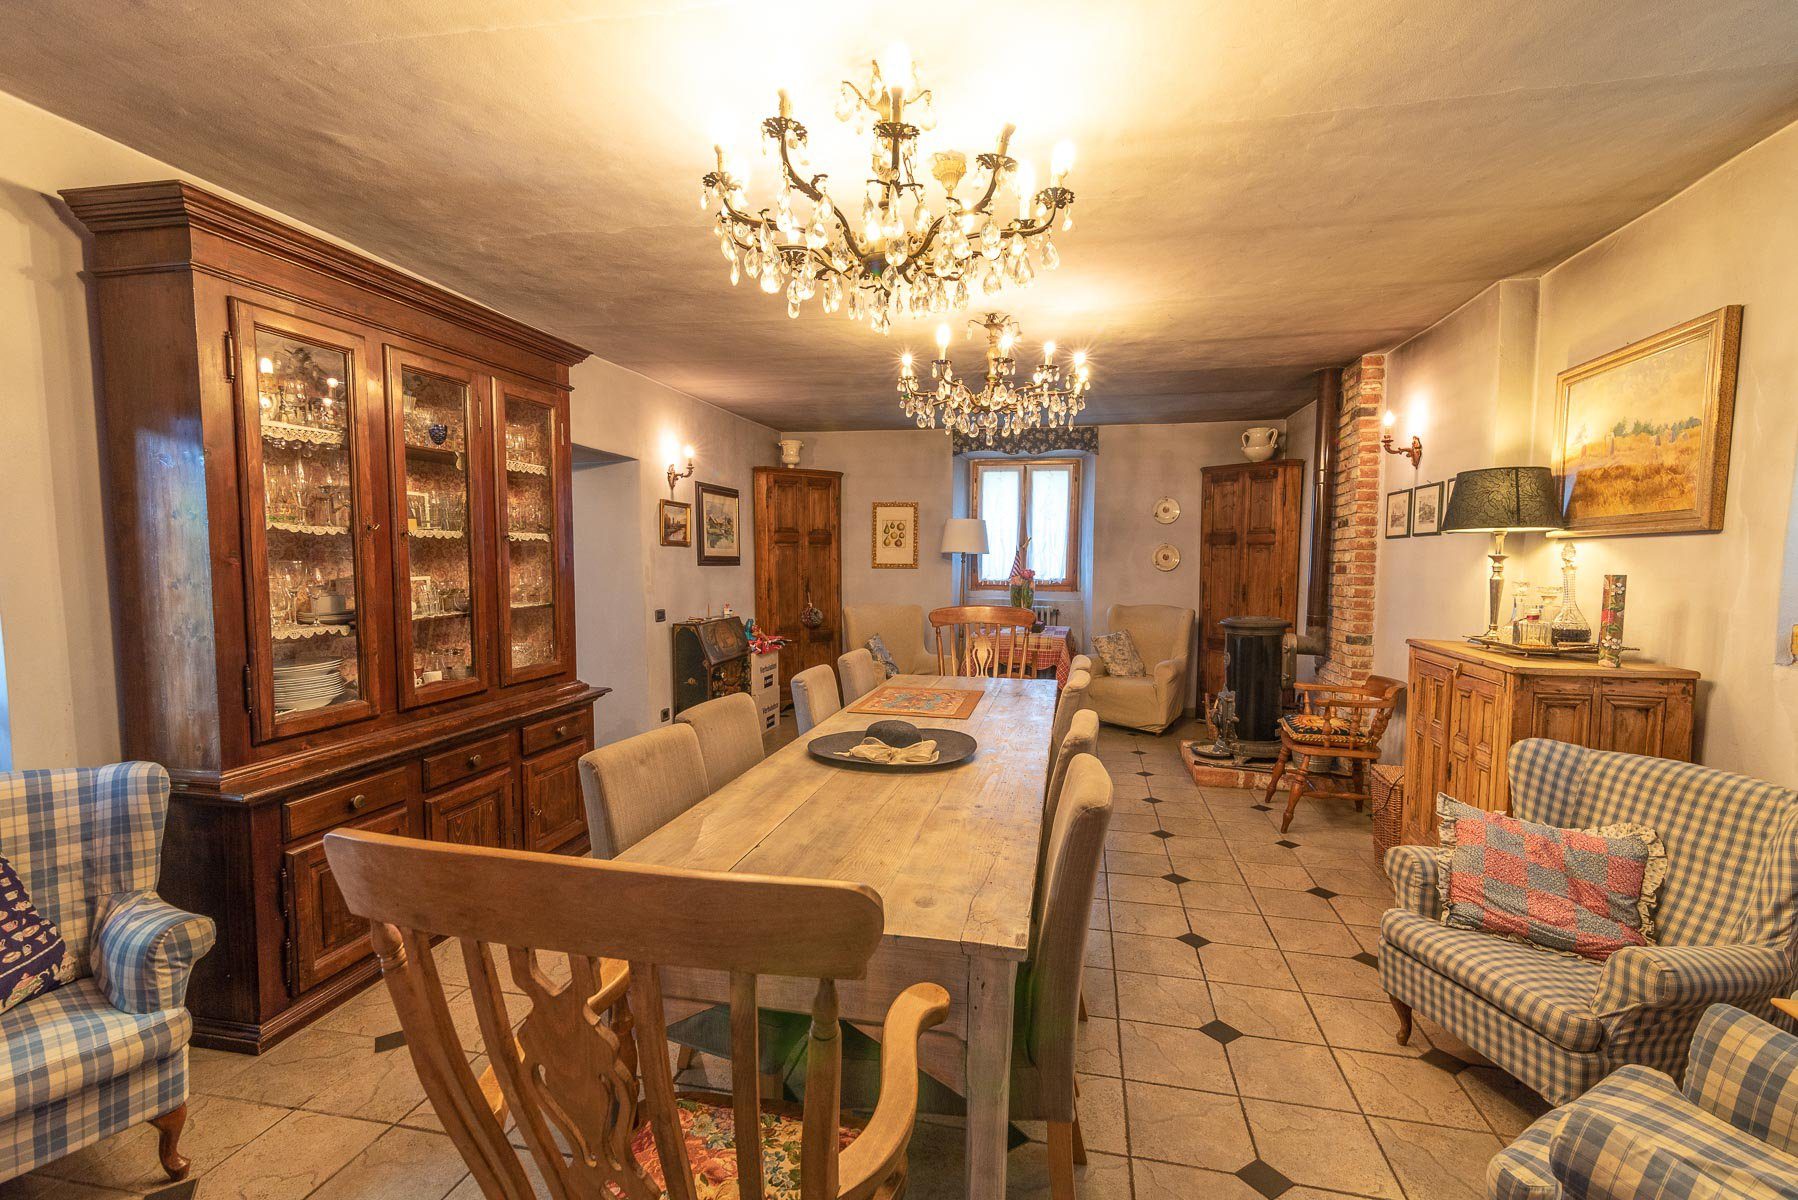 Trait house of land for sale in Paruzzaro- dining room